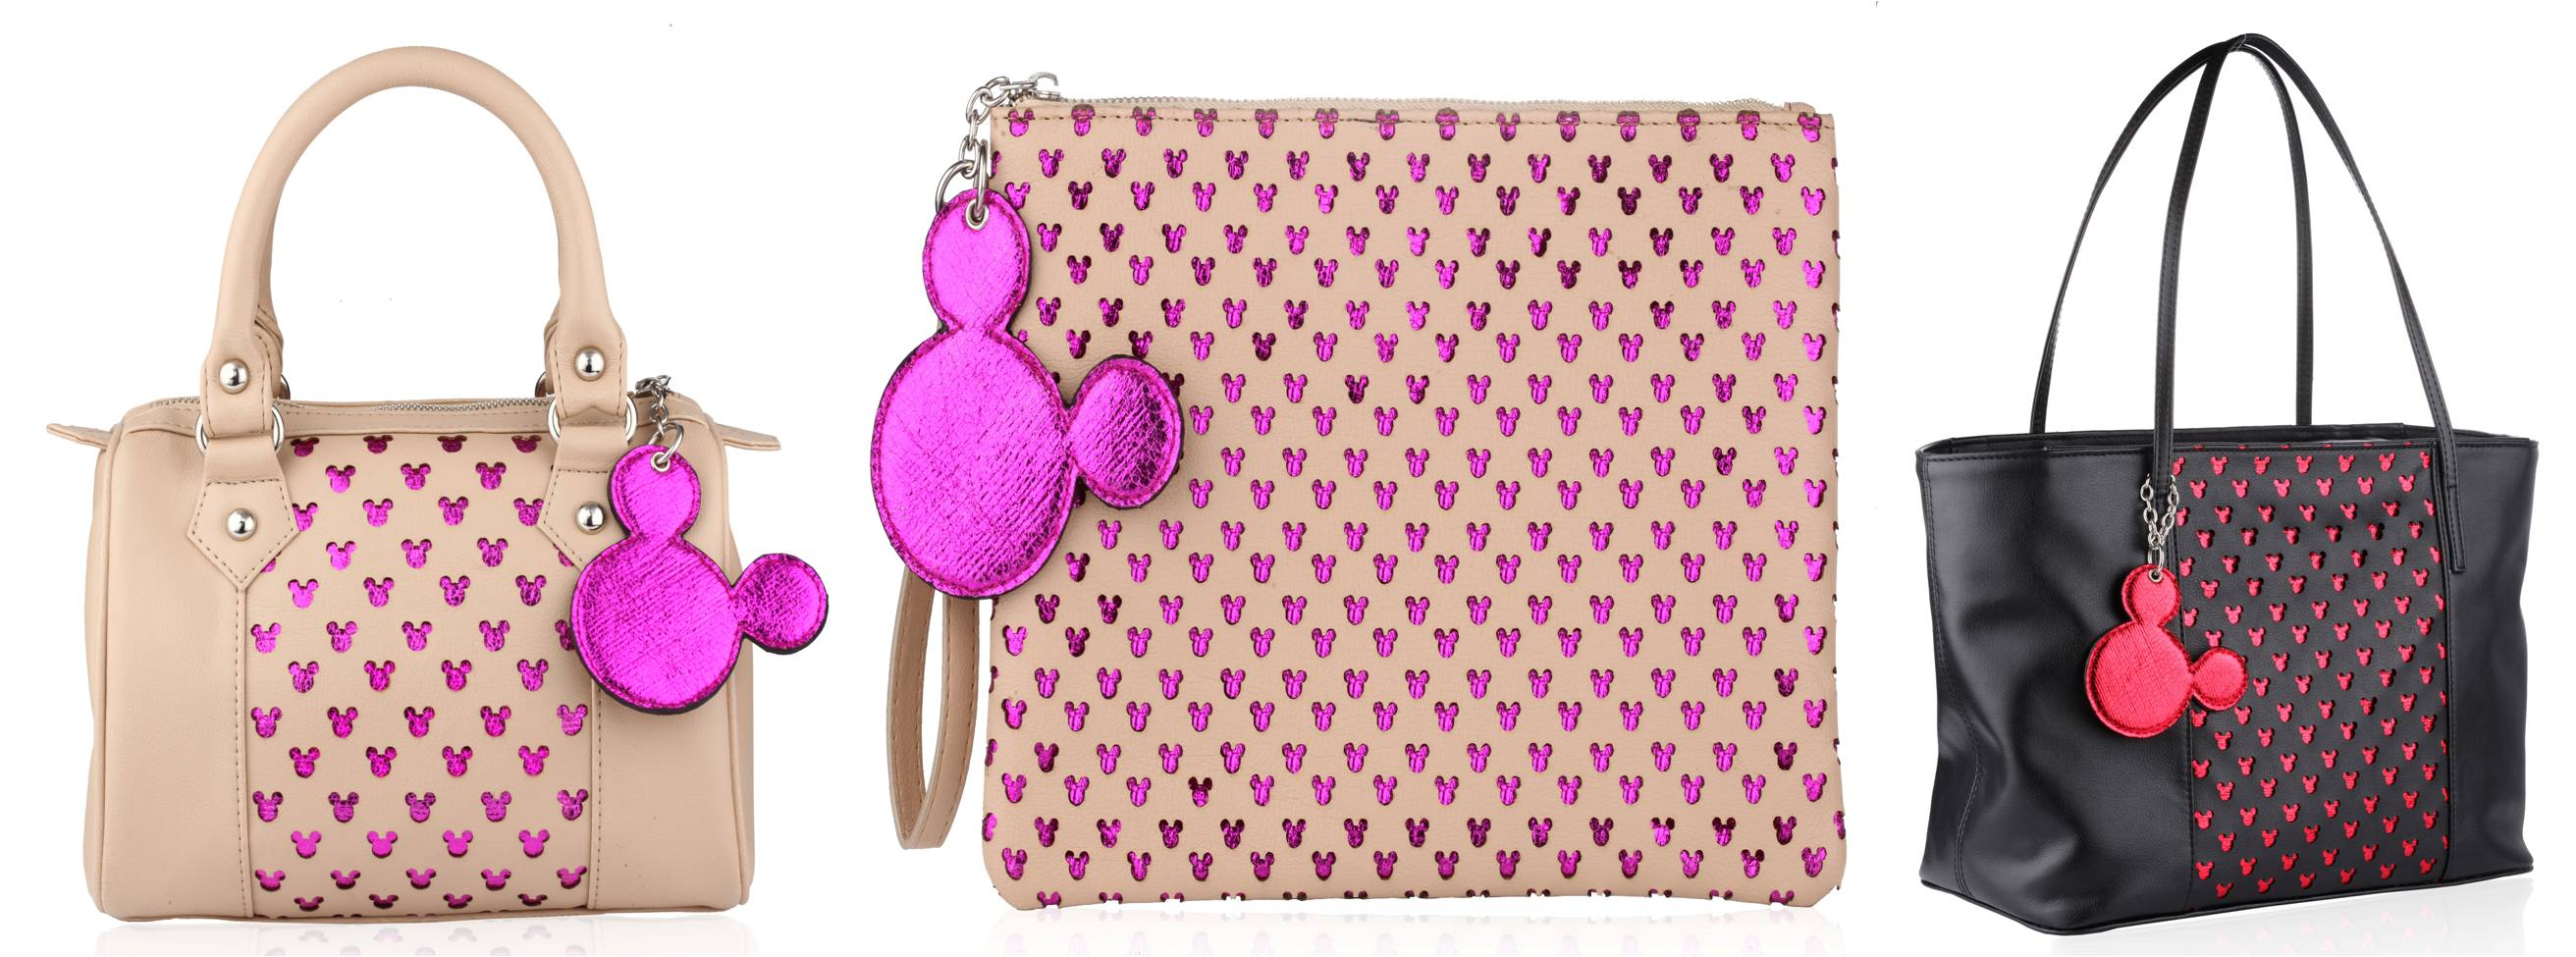 Disney Monopop by Satya Paul Iconic Mickey Bags Rs 2,995-3,995.